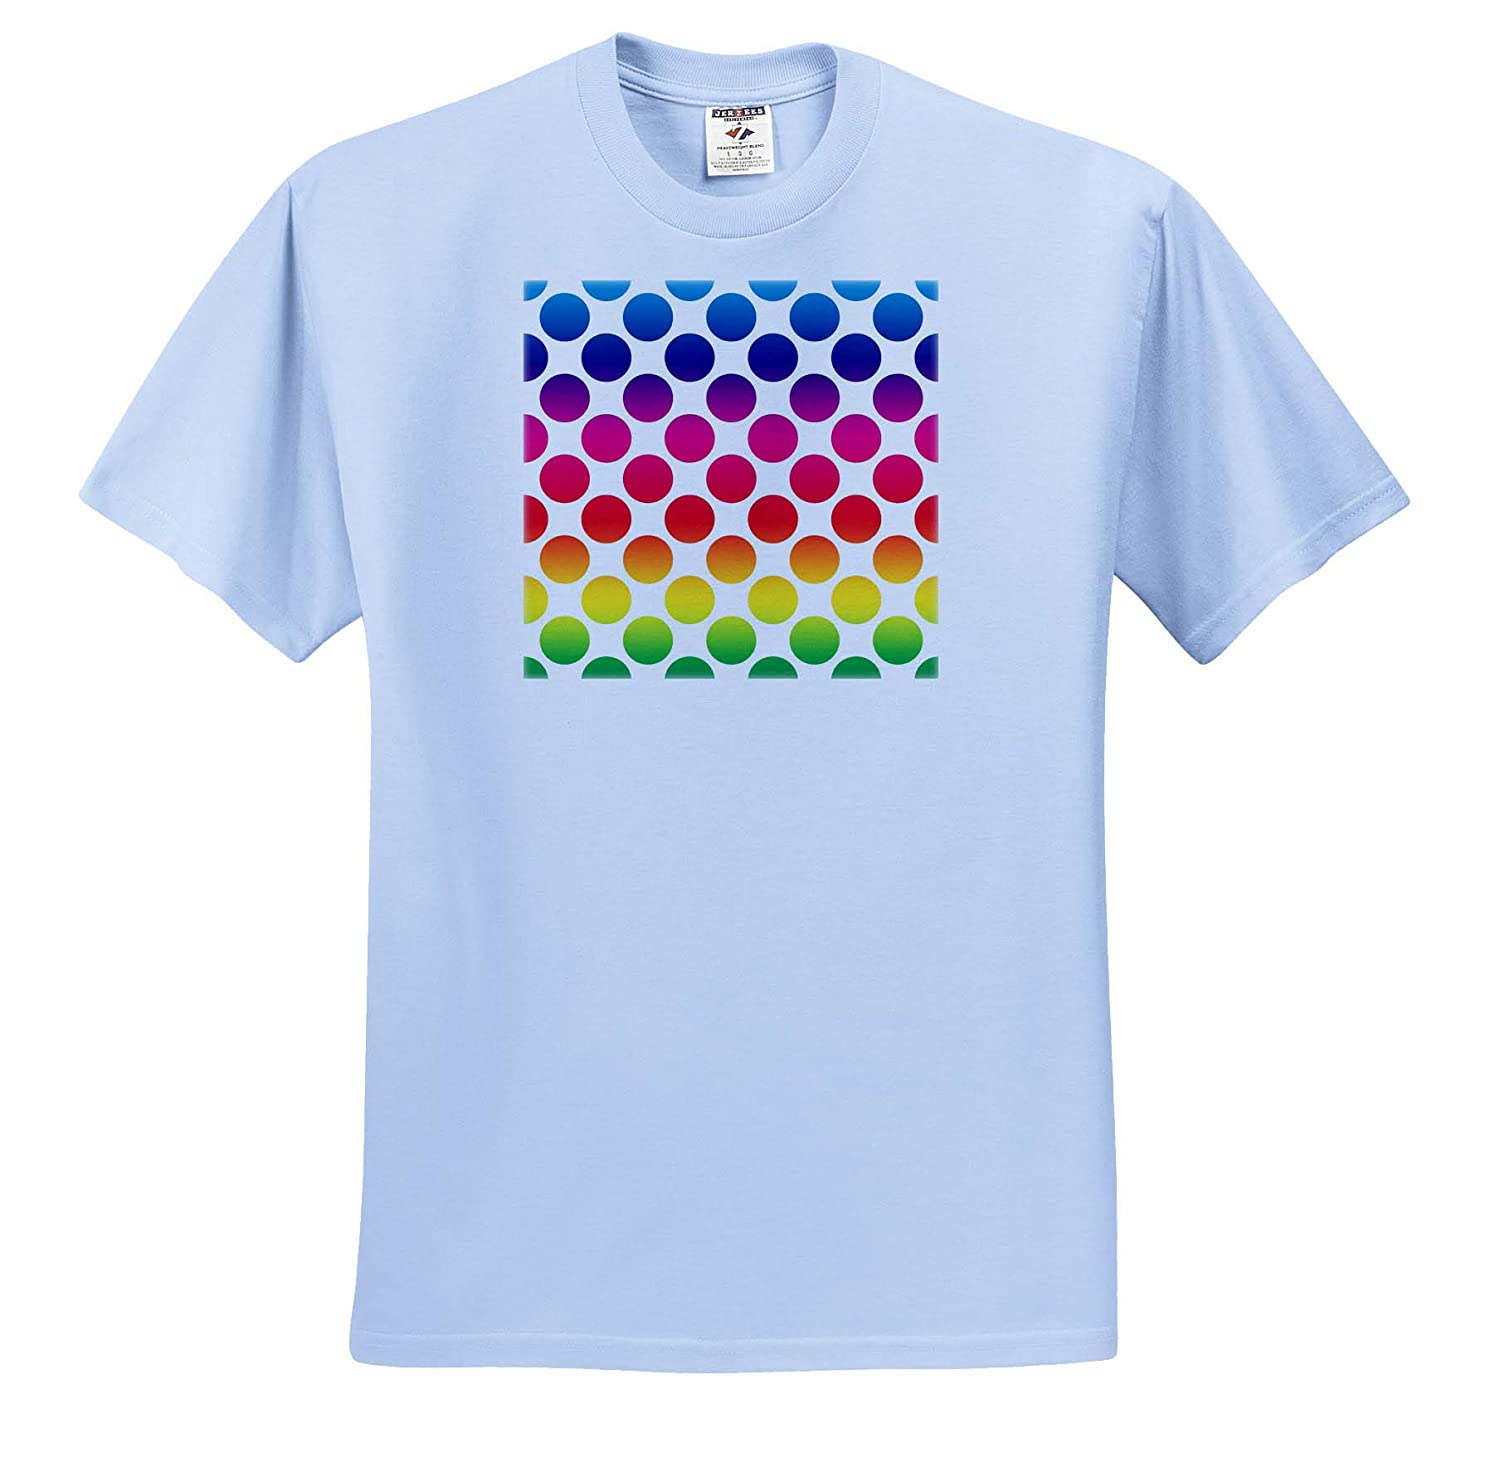 Image of Neon Blue Red Green and Yellow Polka Dots 3dRose Lens Art by Florene Polka Dots Adult T-Shirt XL ts/_320801